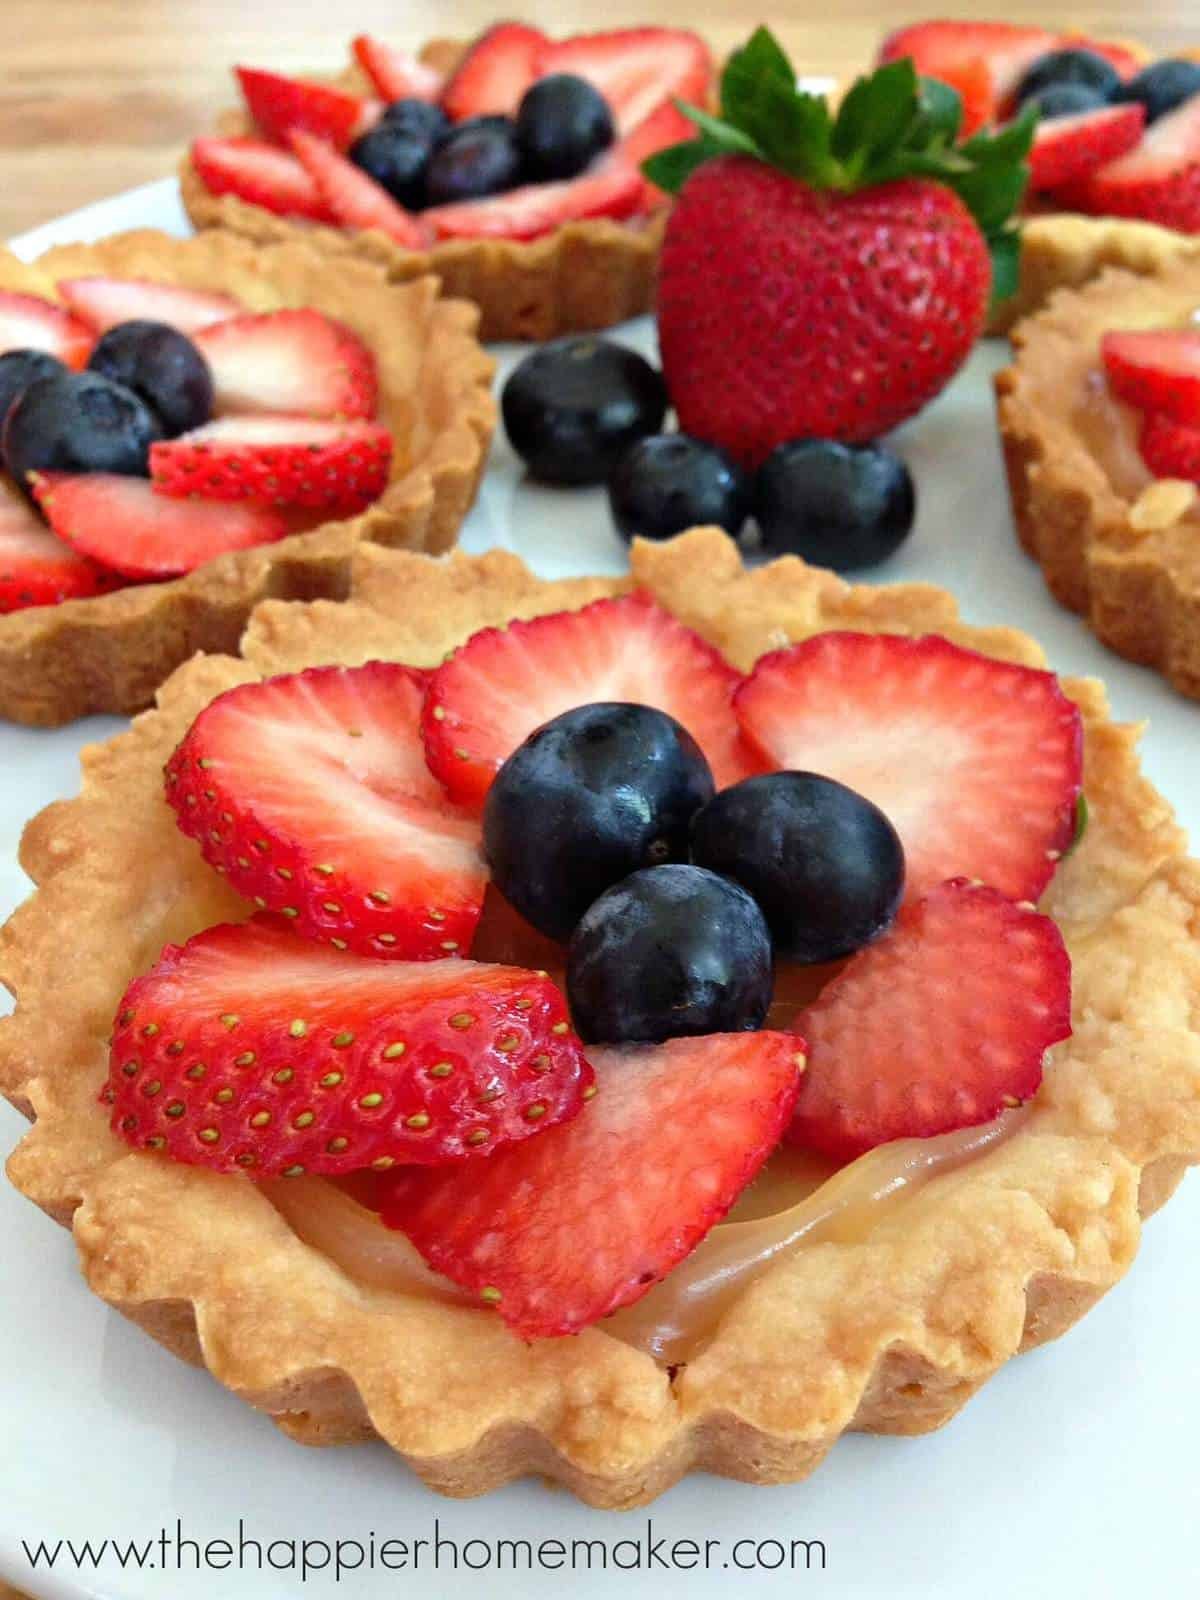 A close up of berry tarts topped with sliced strawberries and blueberries